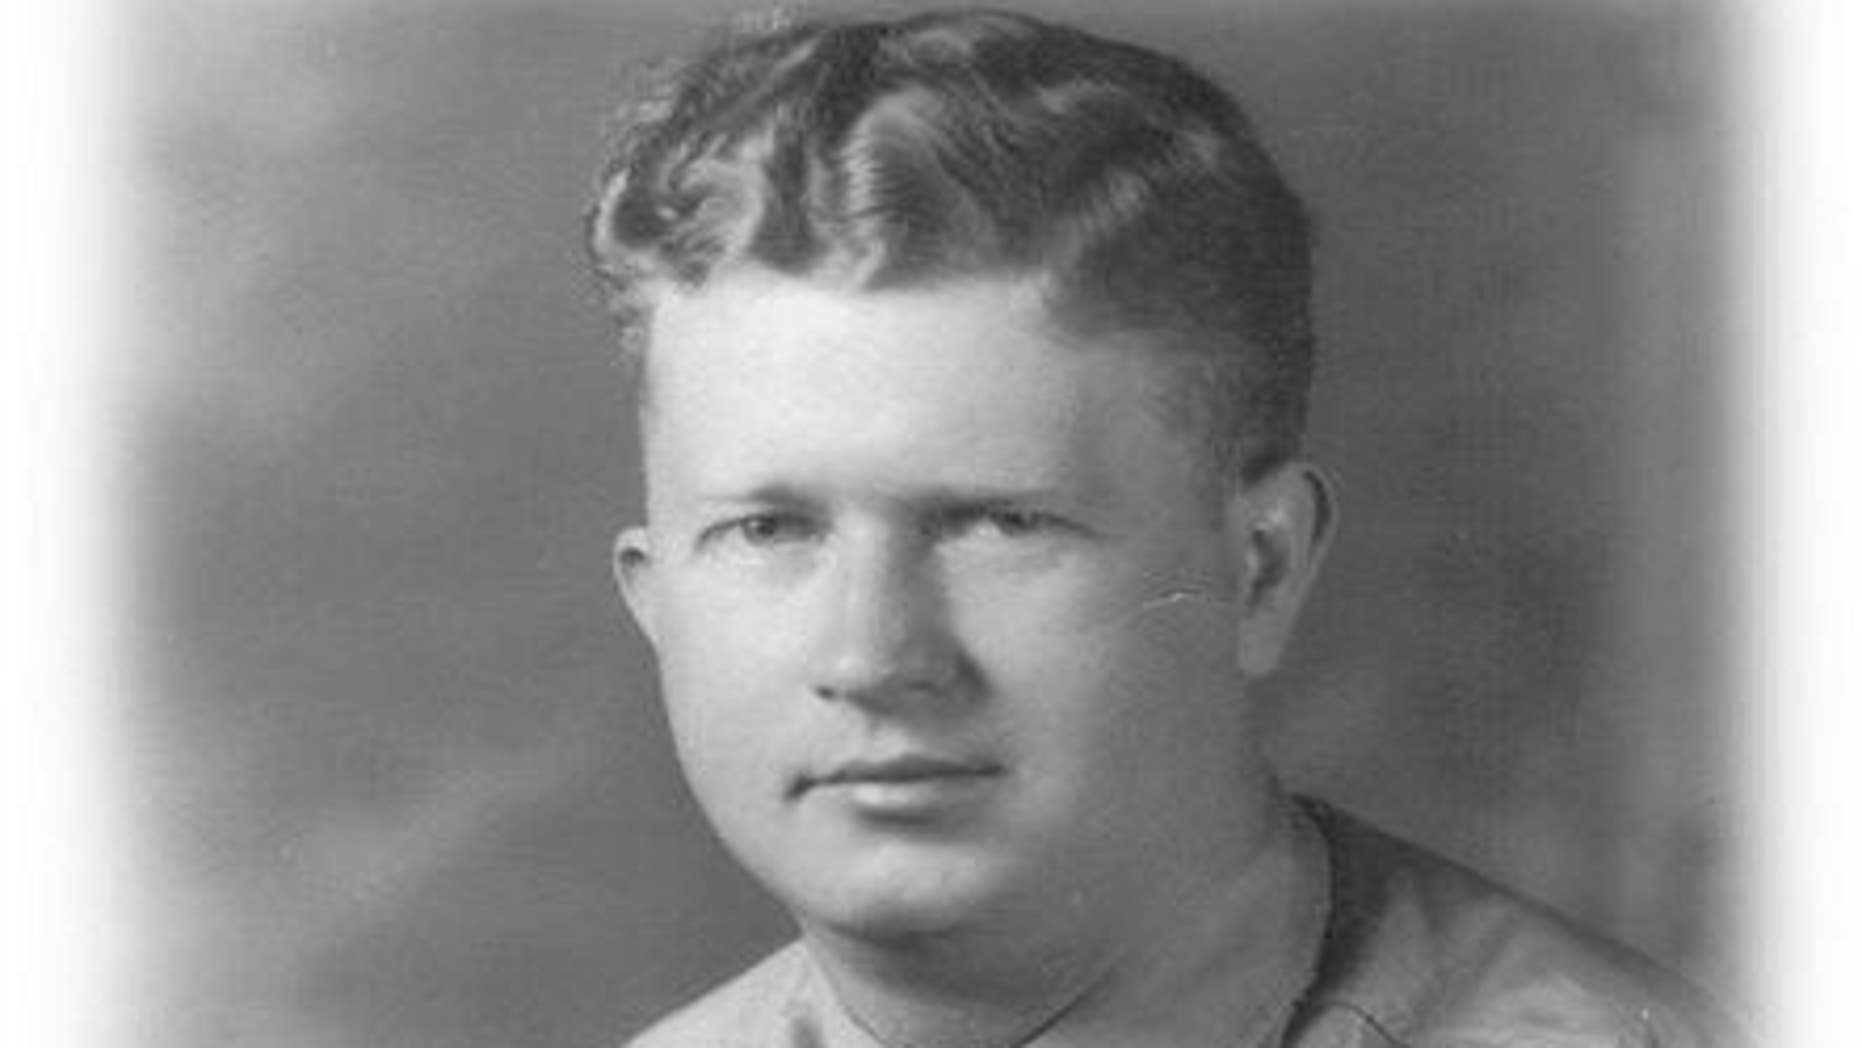 This undated photograph shows World War II, United States Army Master Sgt. Roddie Edmonds.